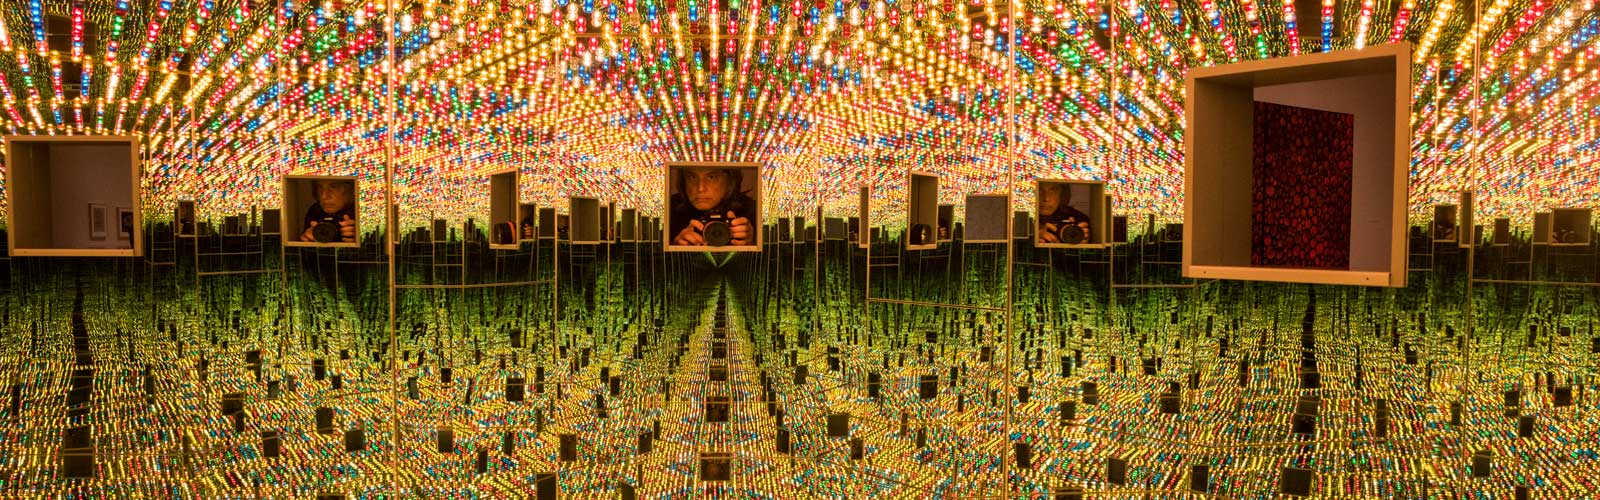 Yayoi Kusama - Infinity Mirrors at the Cleveland Museum of Art <span class='image-credits'>Bob Perkoski</span>